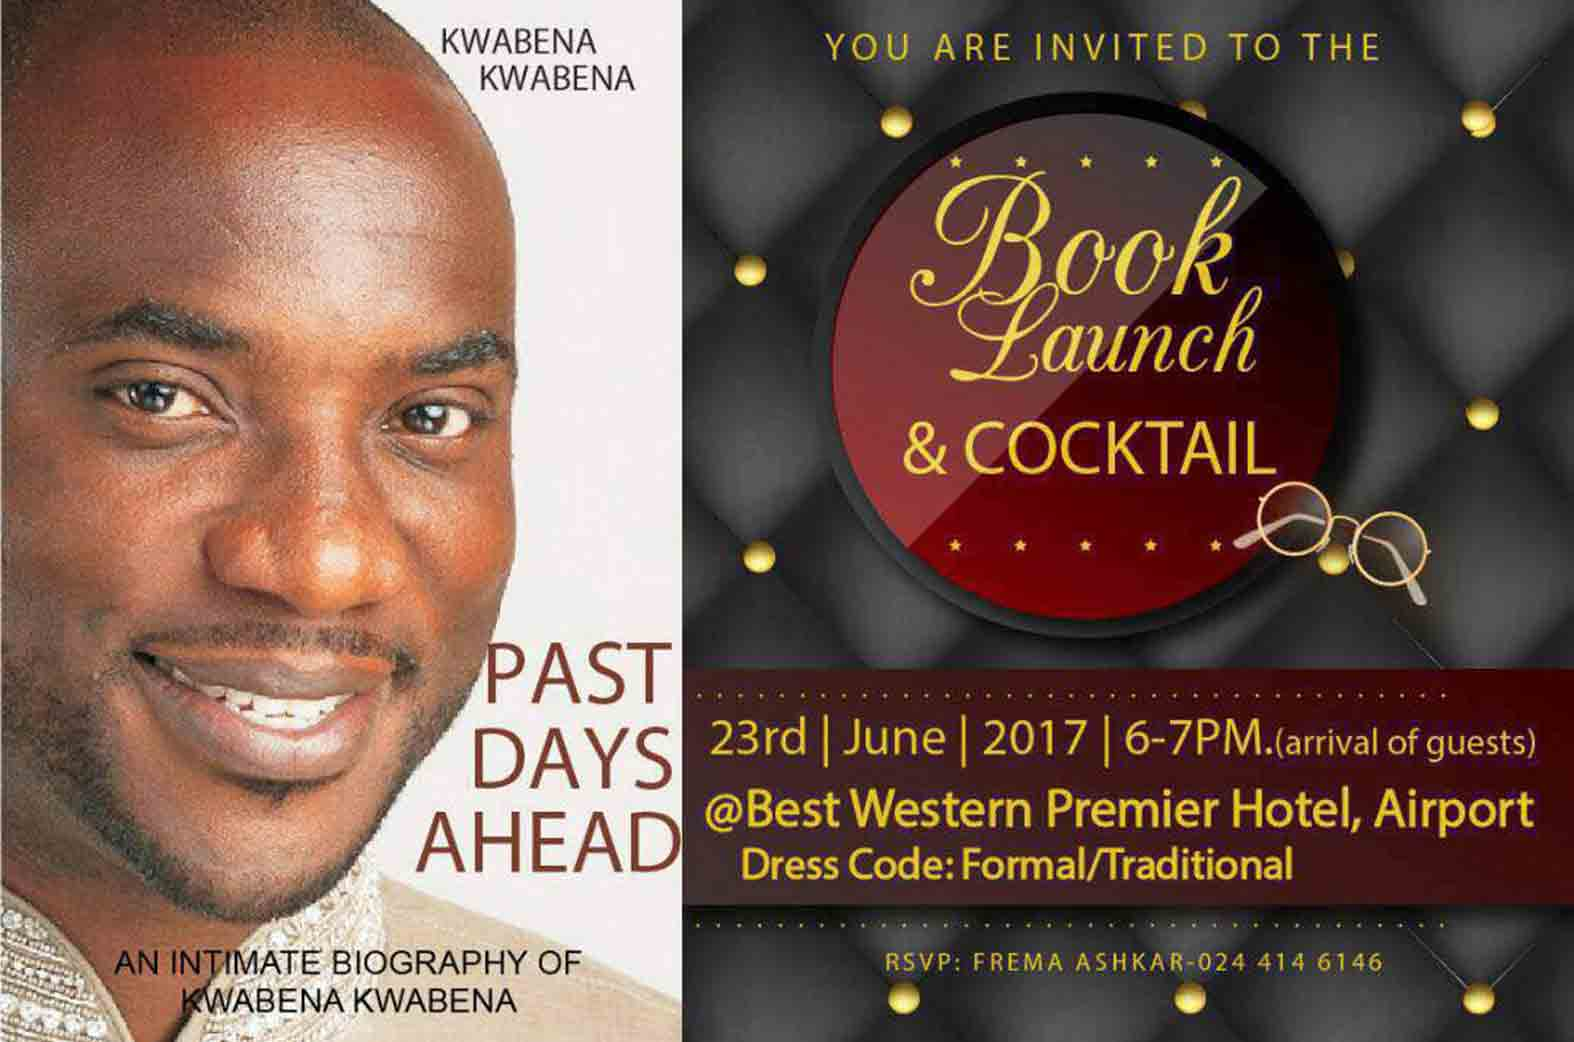 Kwabena Kwabena book launch